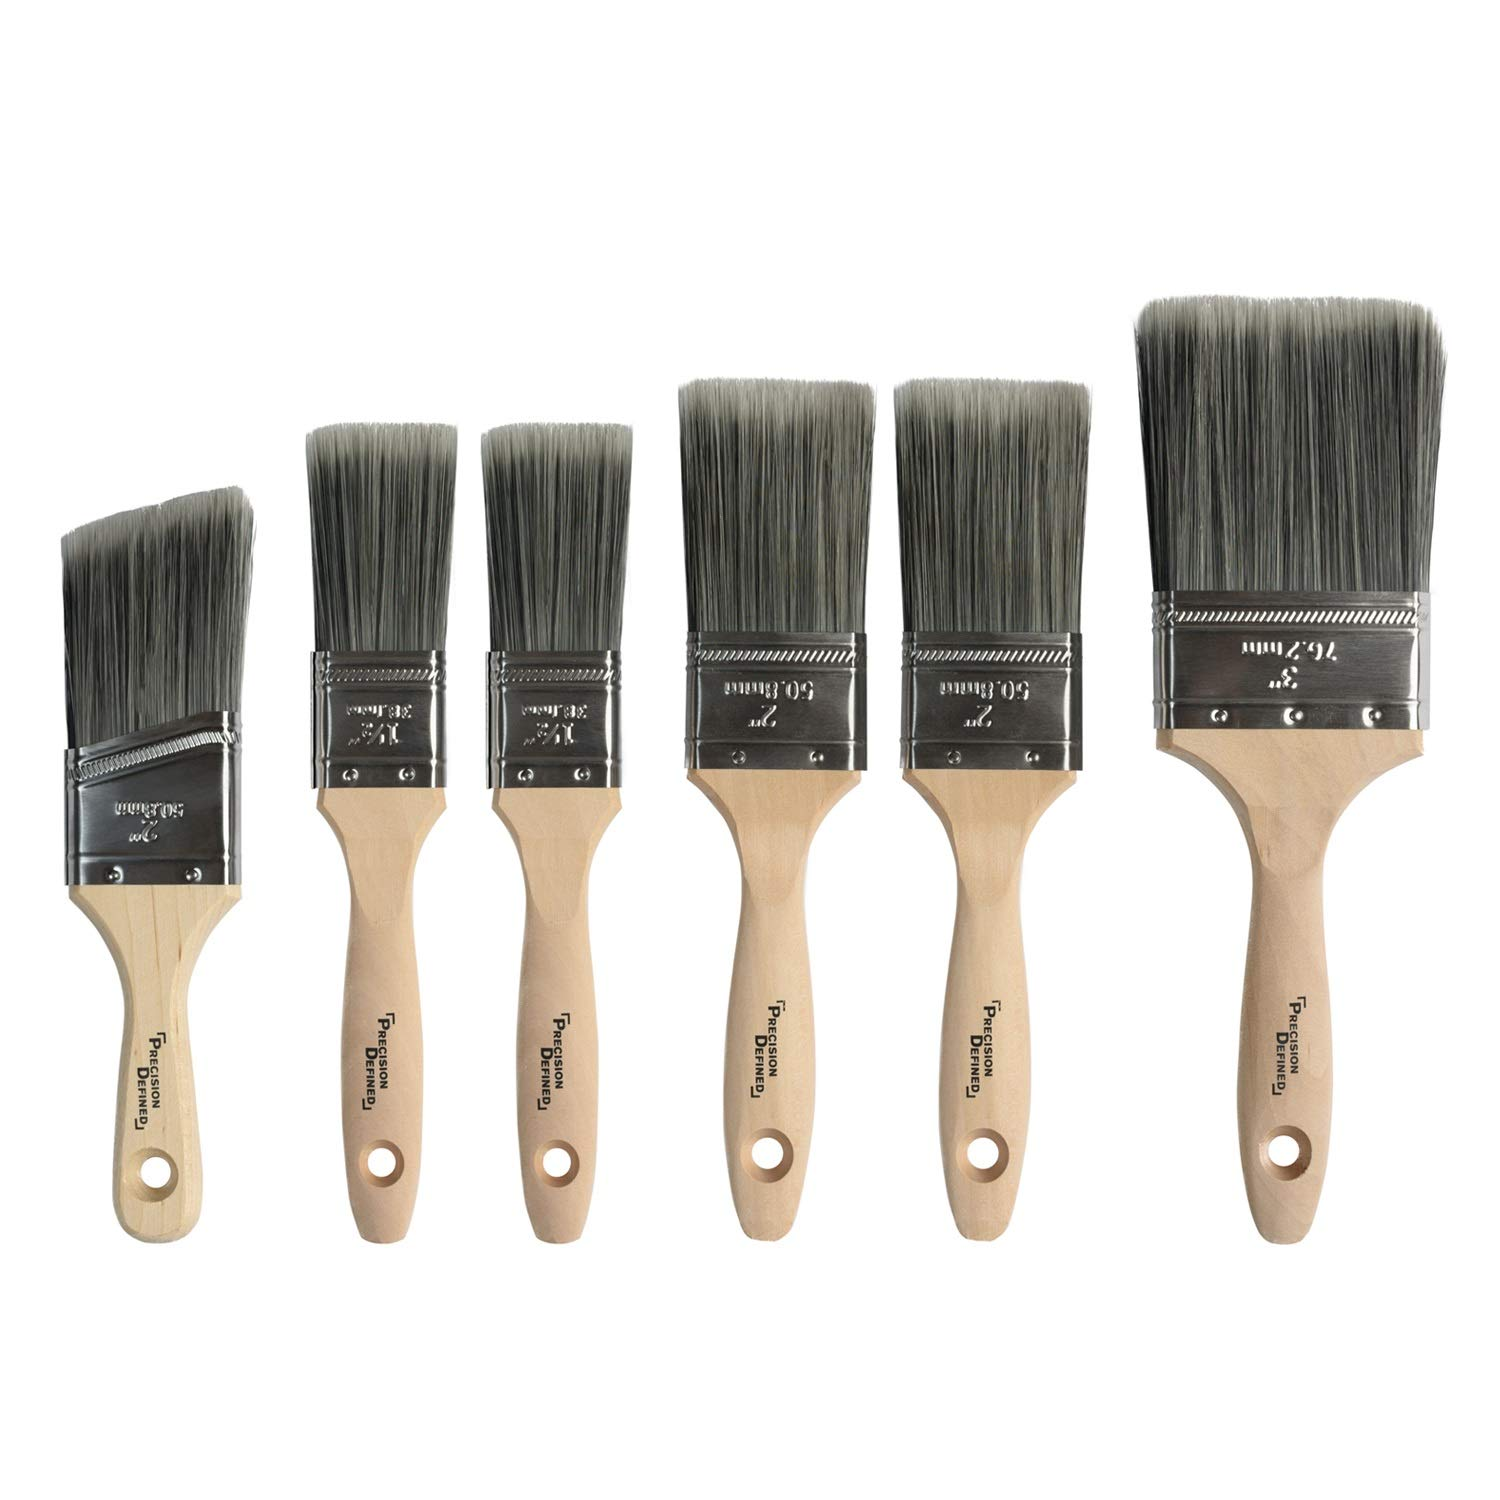 Heavy-Duty Professional 6 Piece Paintbrush Set, with SRT PET Bristles and Natural Birch Handles, Precision Defined